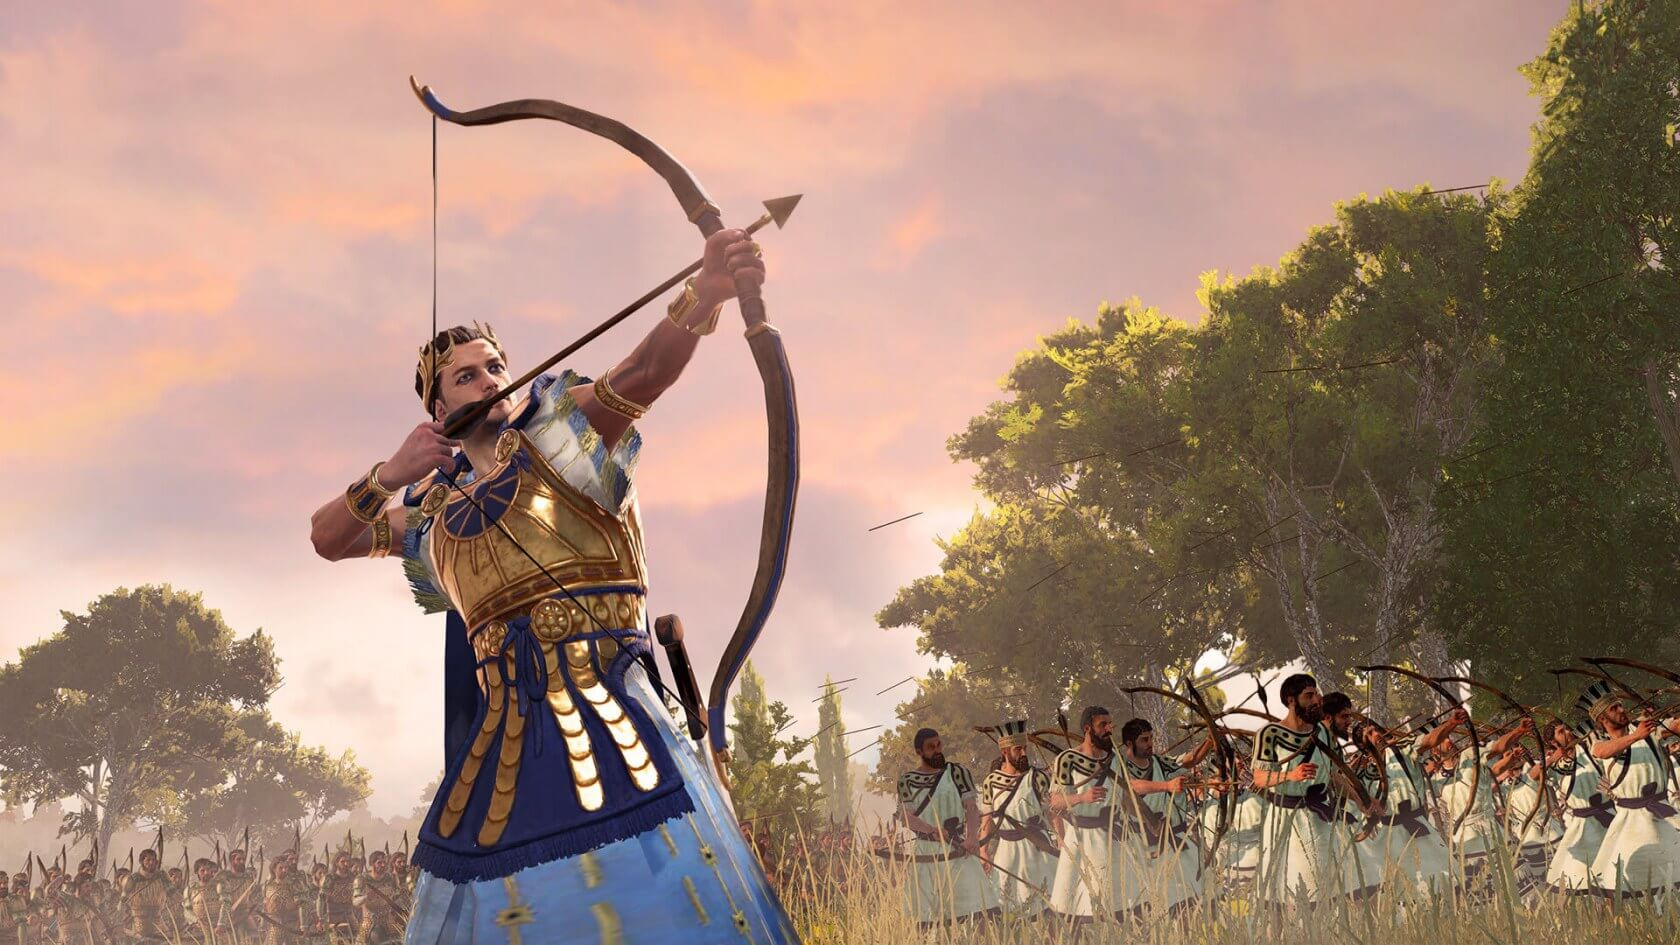 Total War Saga: Troy is free on the Epic Games Store for 24 hours